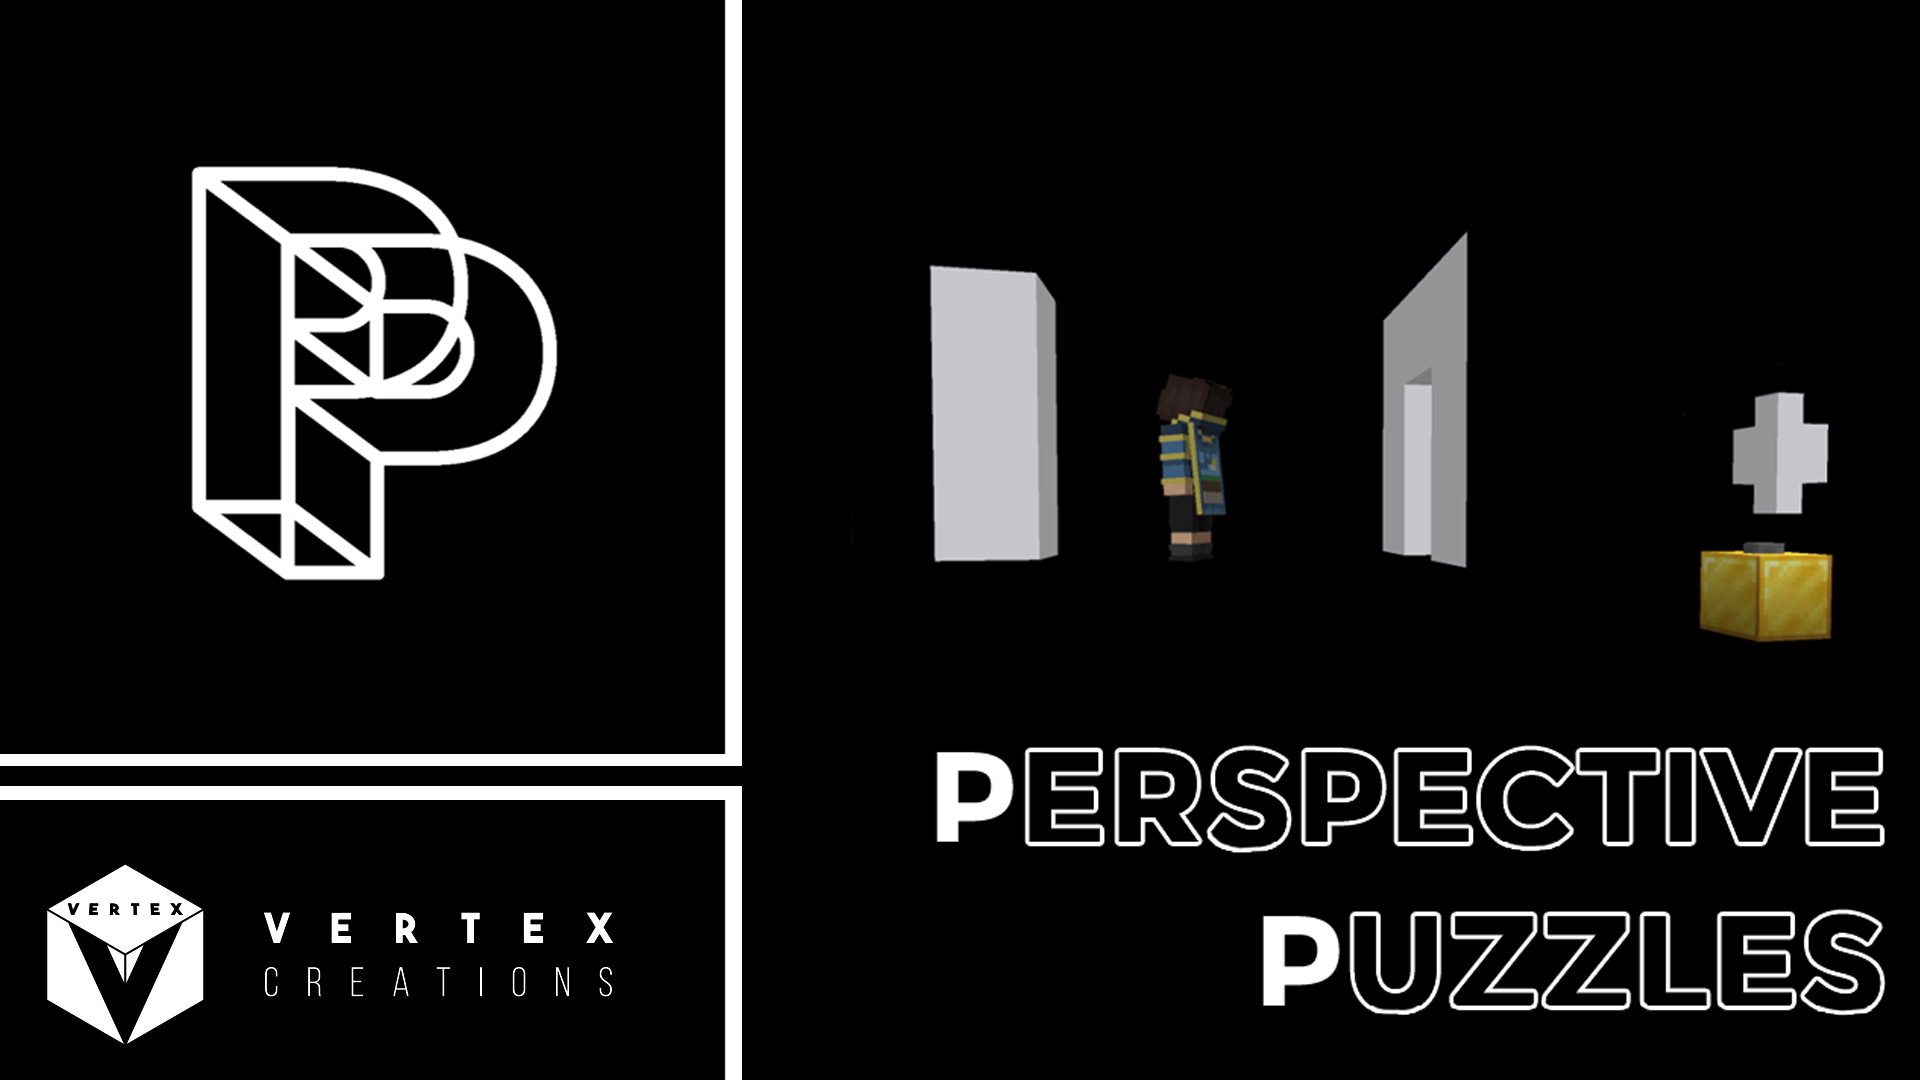 Perspective Puzzles